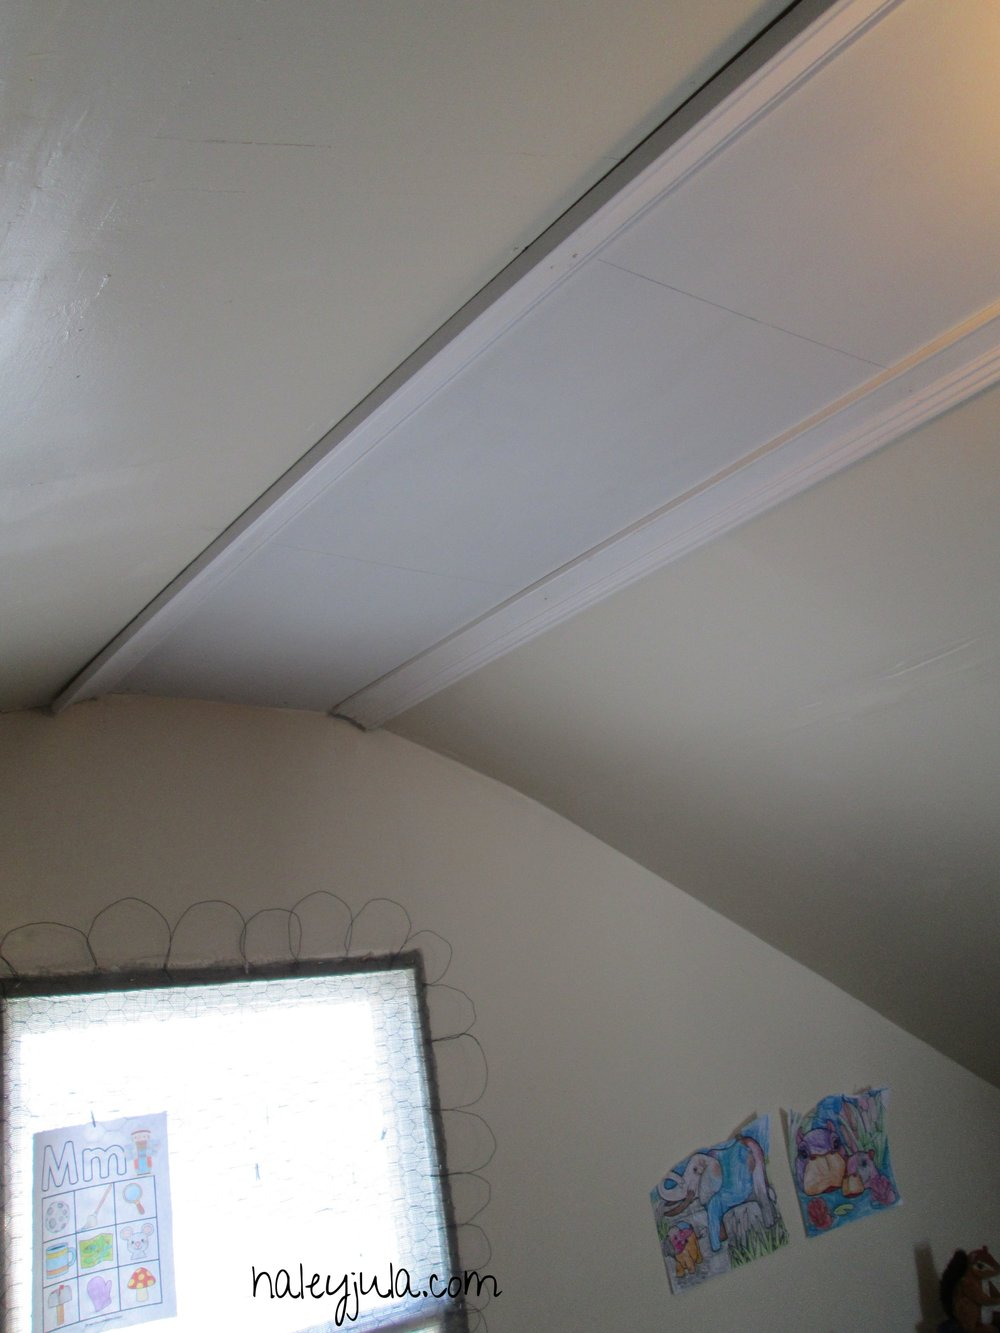 After- The ceiling with trim molding and new paint.